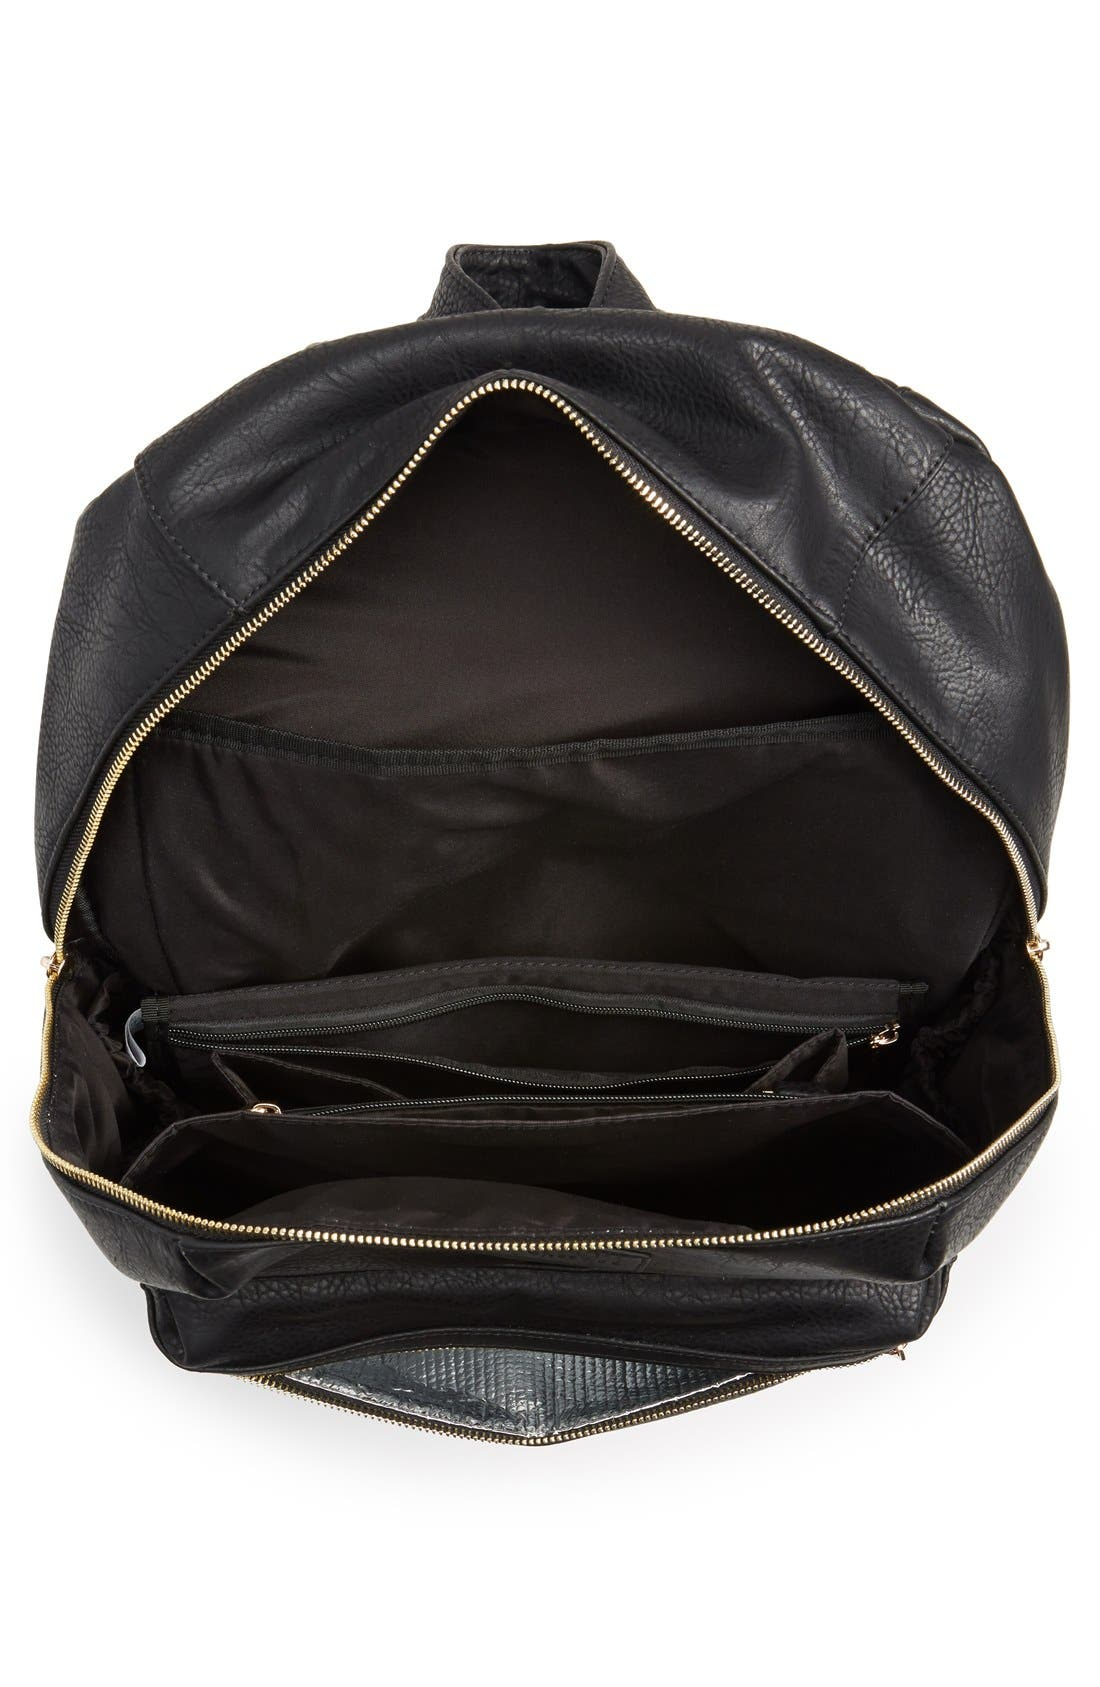 Alternate Image 4  - The Honest Company 'City' Faux Leather Diaper Backpack